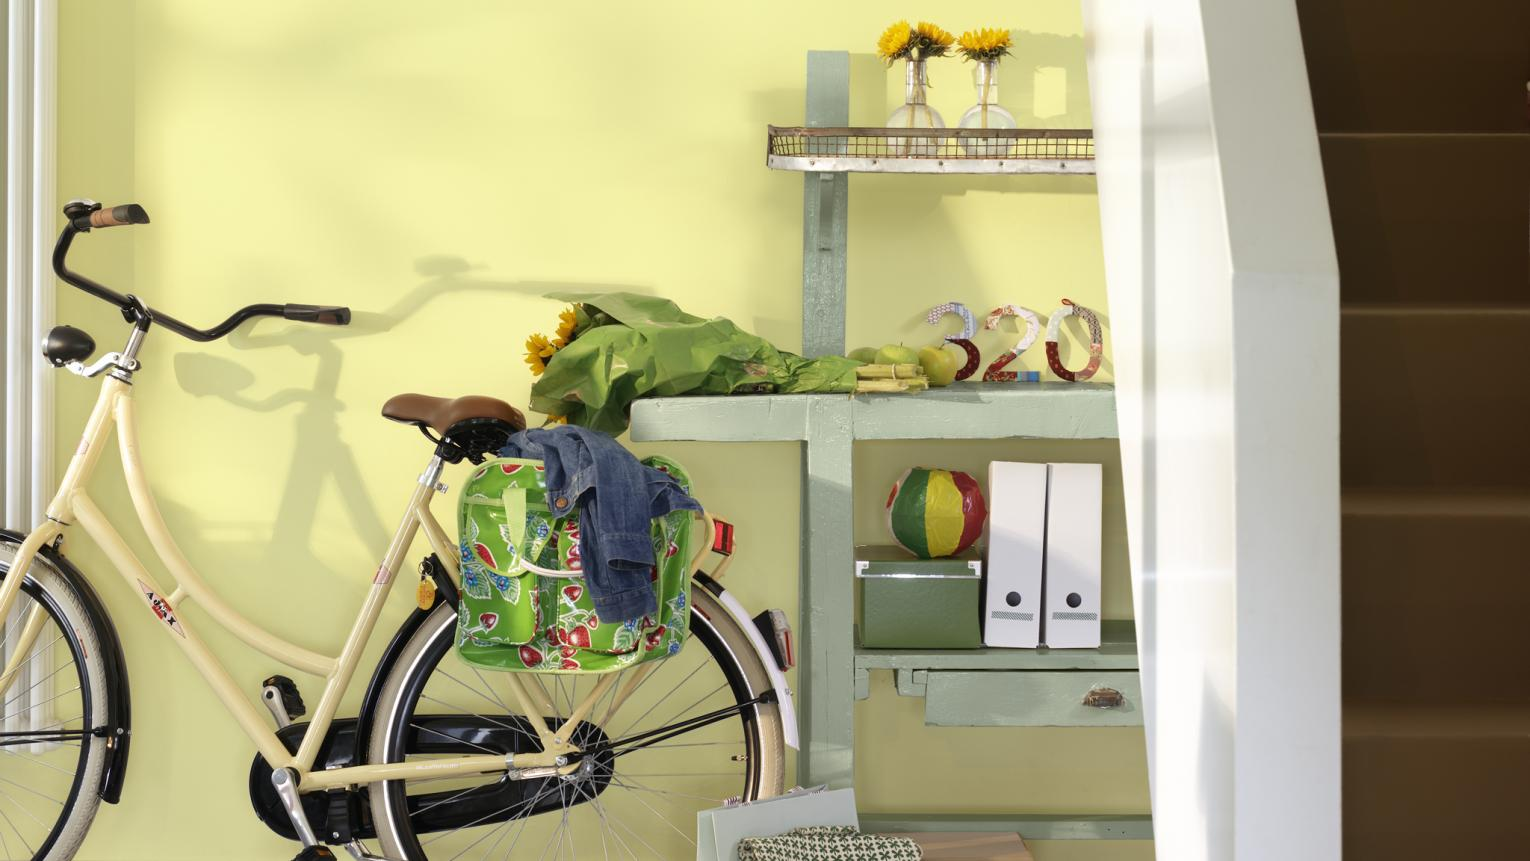 Use refreshing lemon yellow and green to enhance natural light.